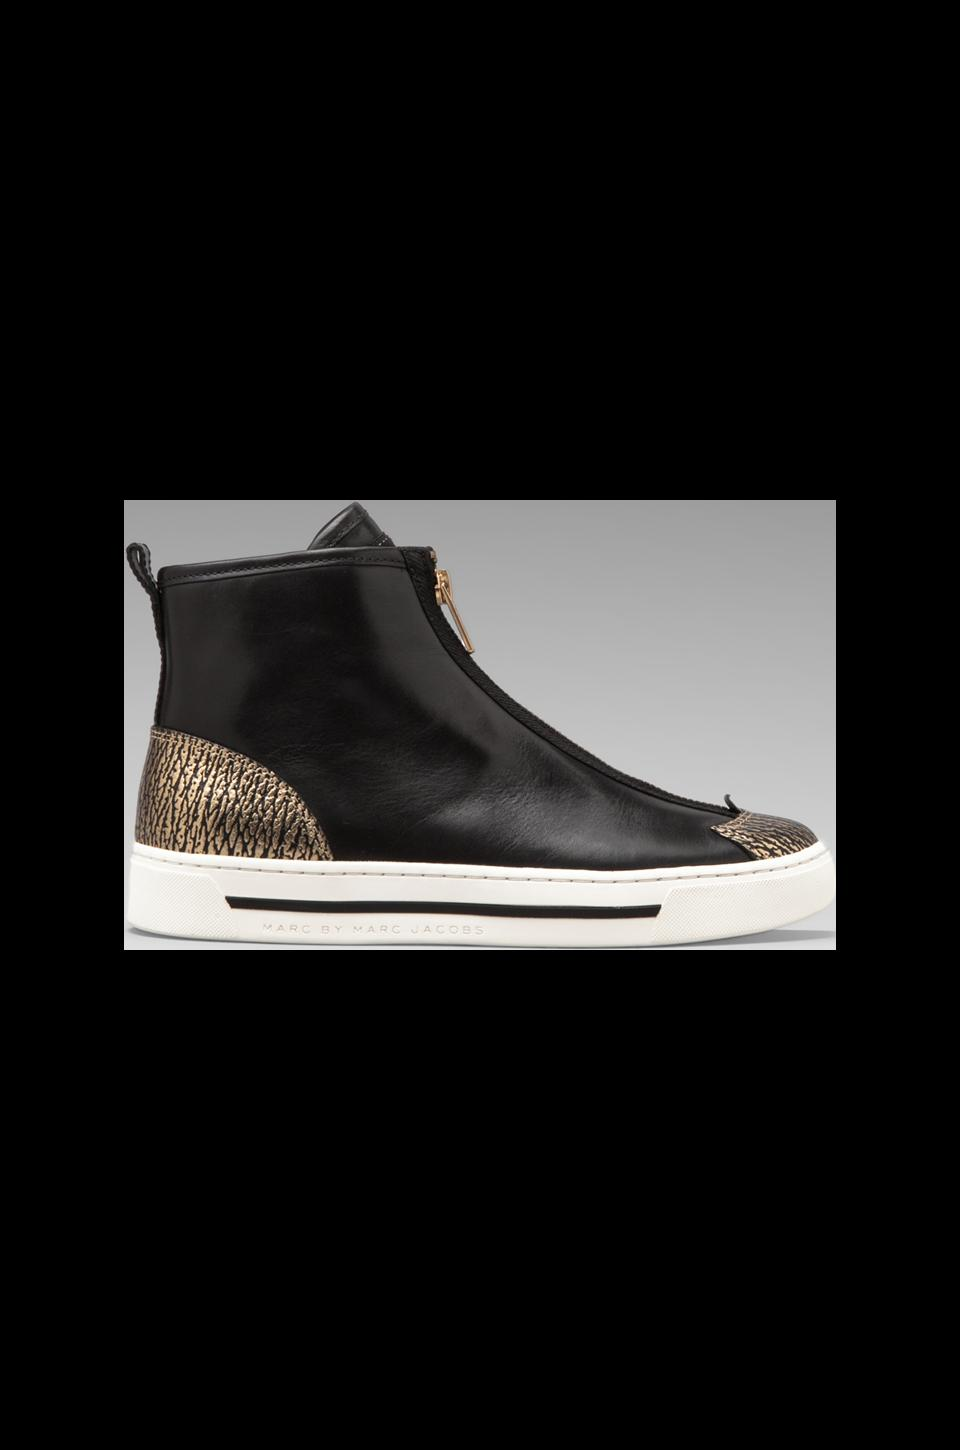 Marc by Marc Jacobs Good Sport 10mm Sneaker in Gold/Black